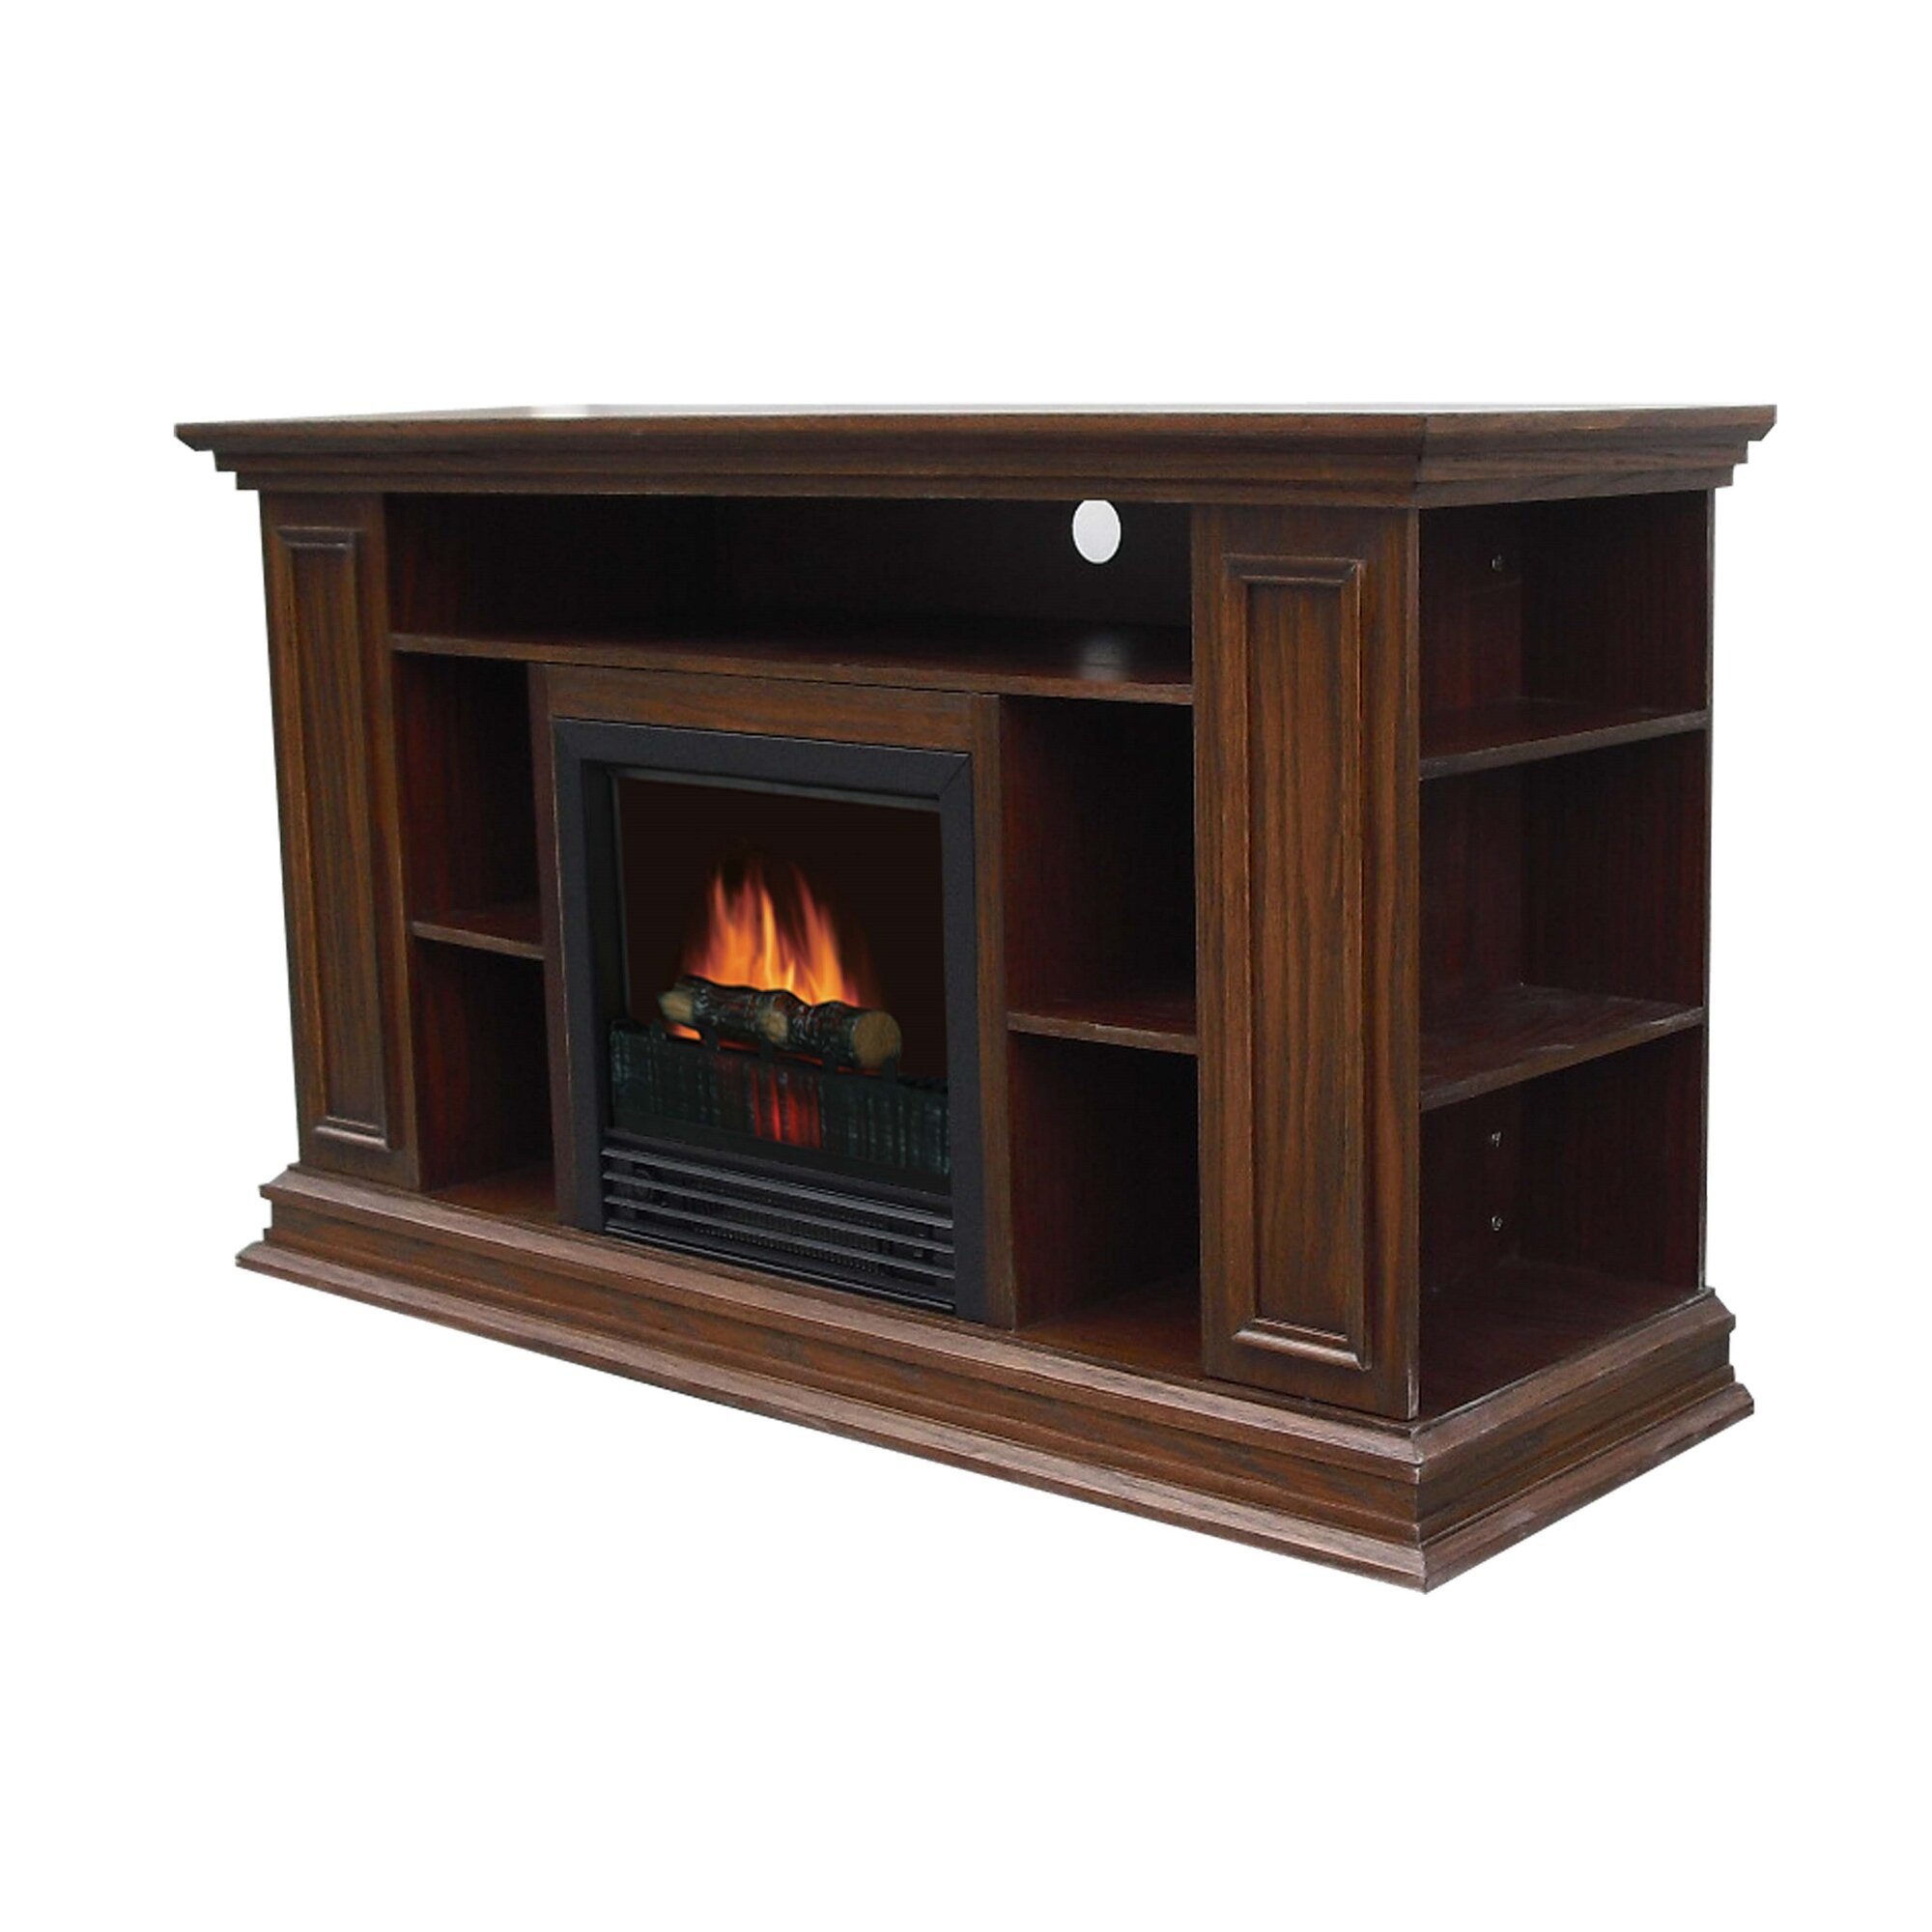 Bedroom electric fireplace - Bedroom Electric Fireplace 46